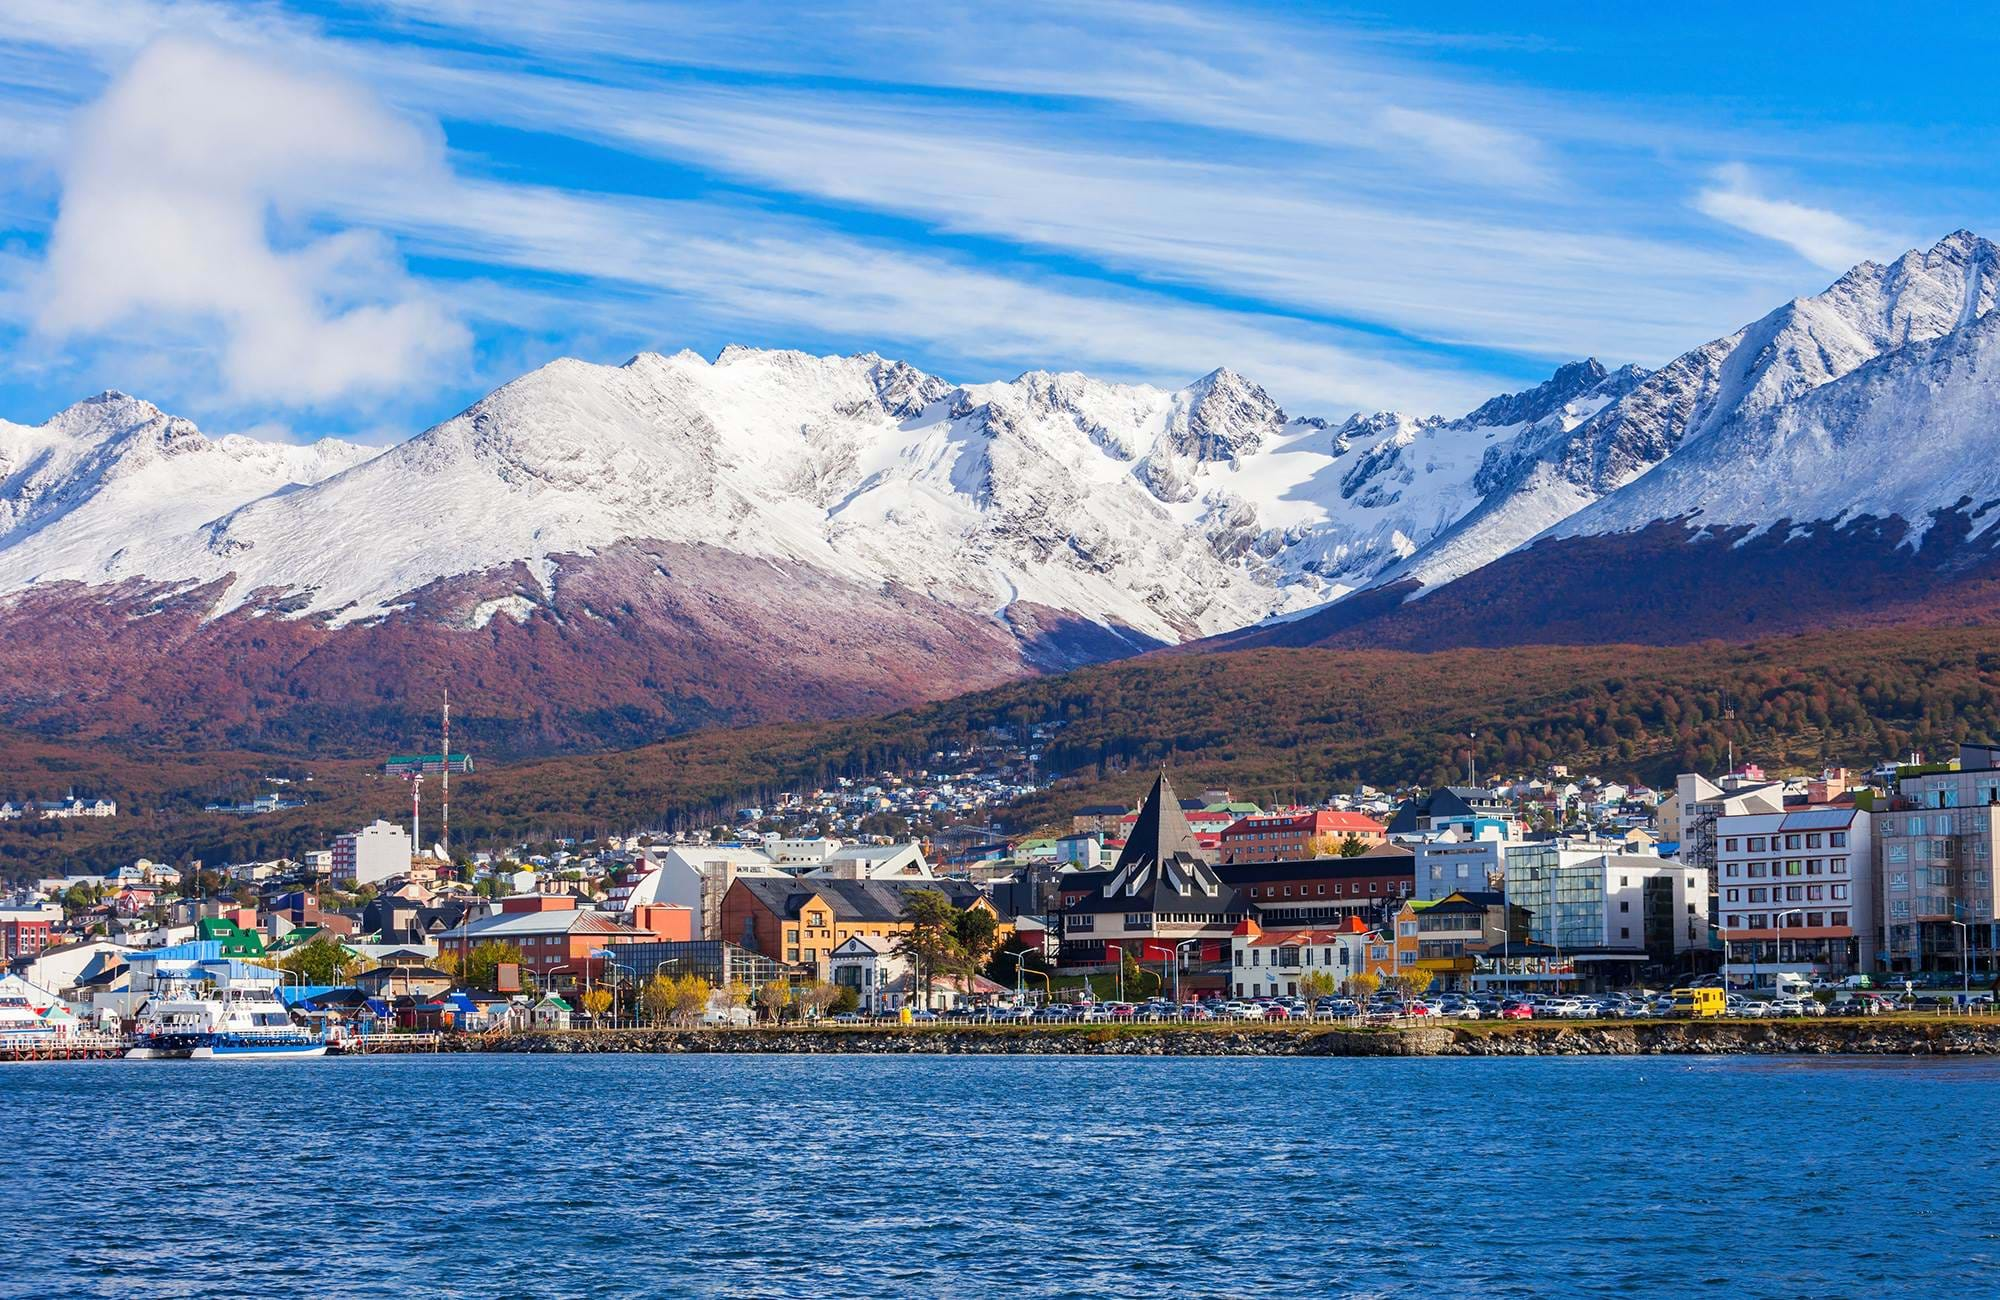 View of the city Ushuaia from the sea with mountains in the background, Argentina